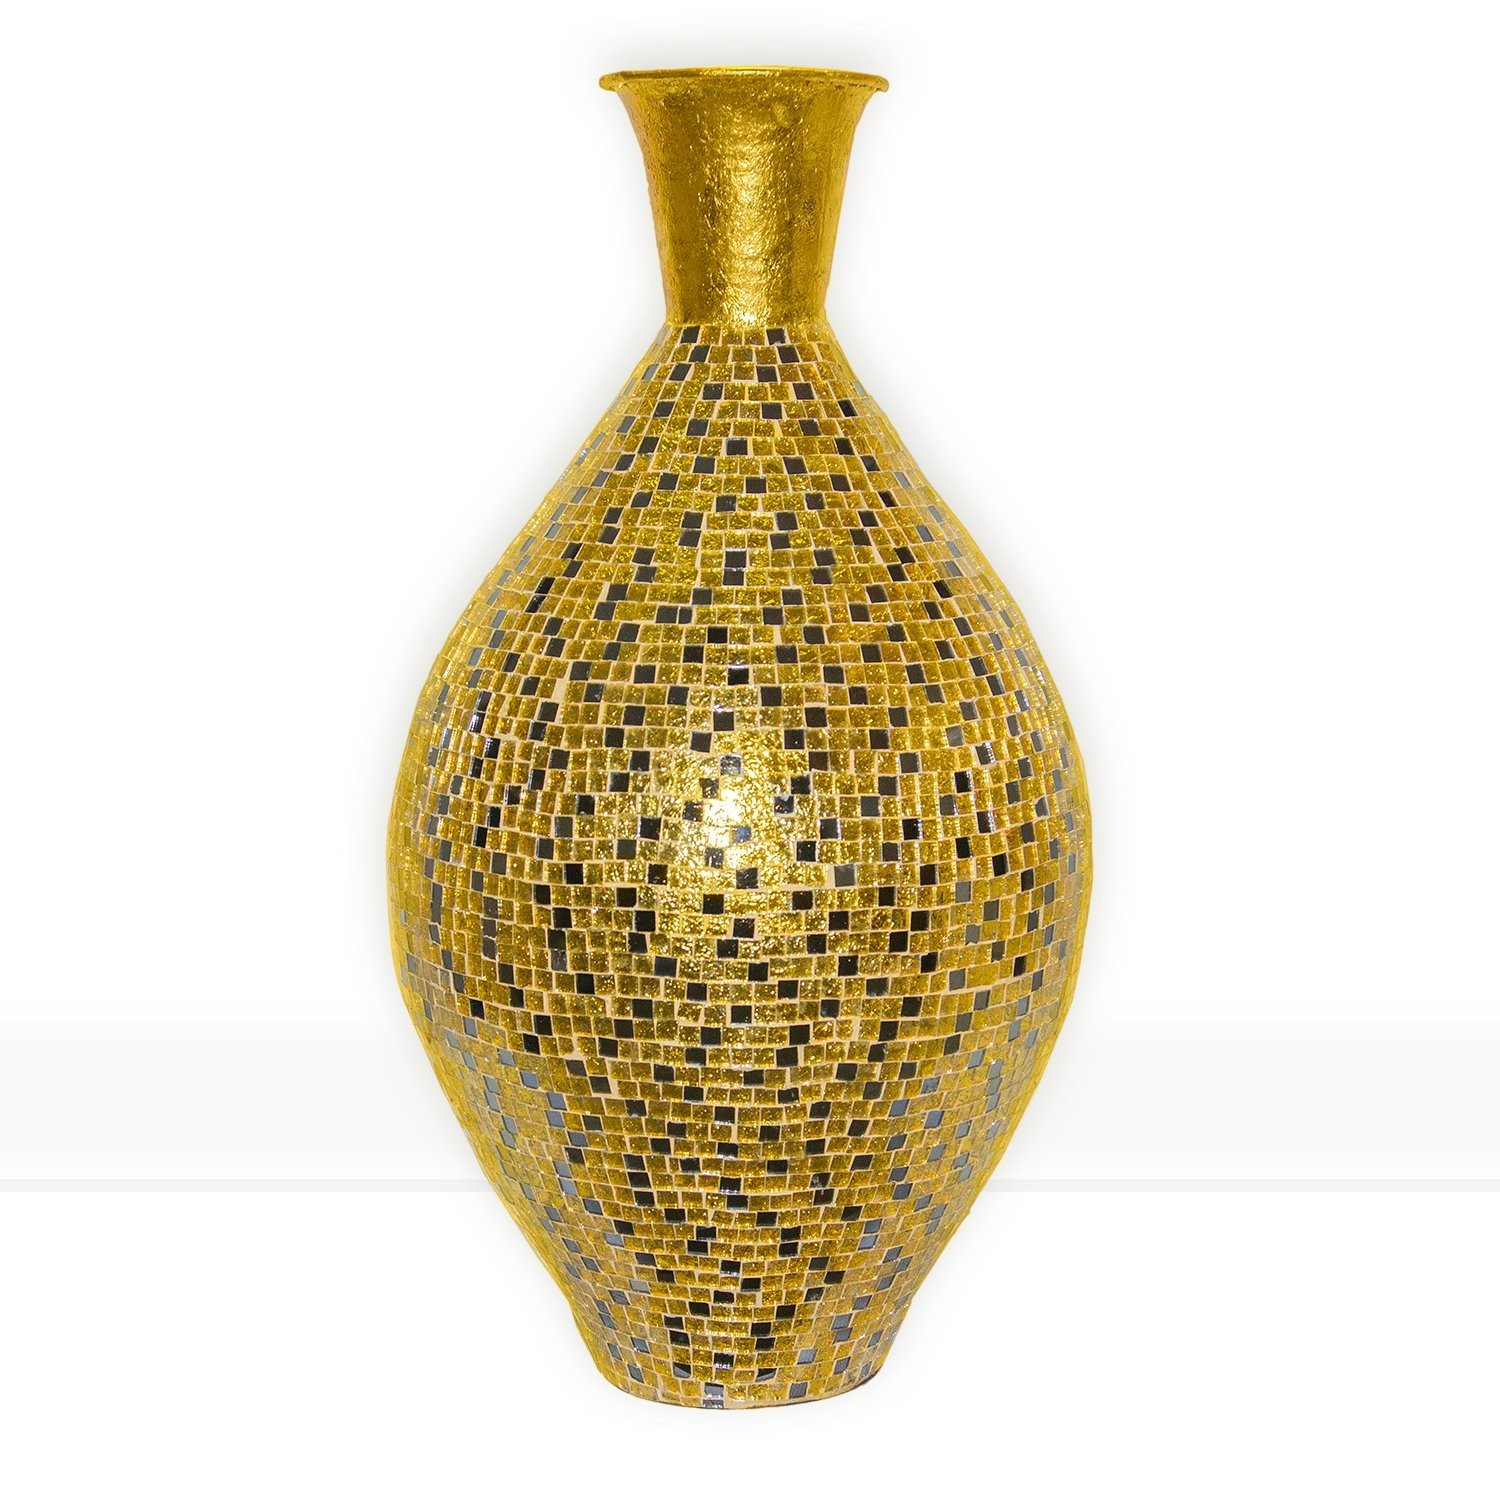 Metal floor vase gallery vases design picture buy 30 seketa regent gold surahi jug vase glass mosaic metal buy 30 seketa regent gold reviewsmspy